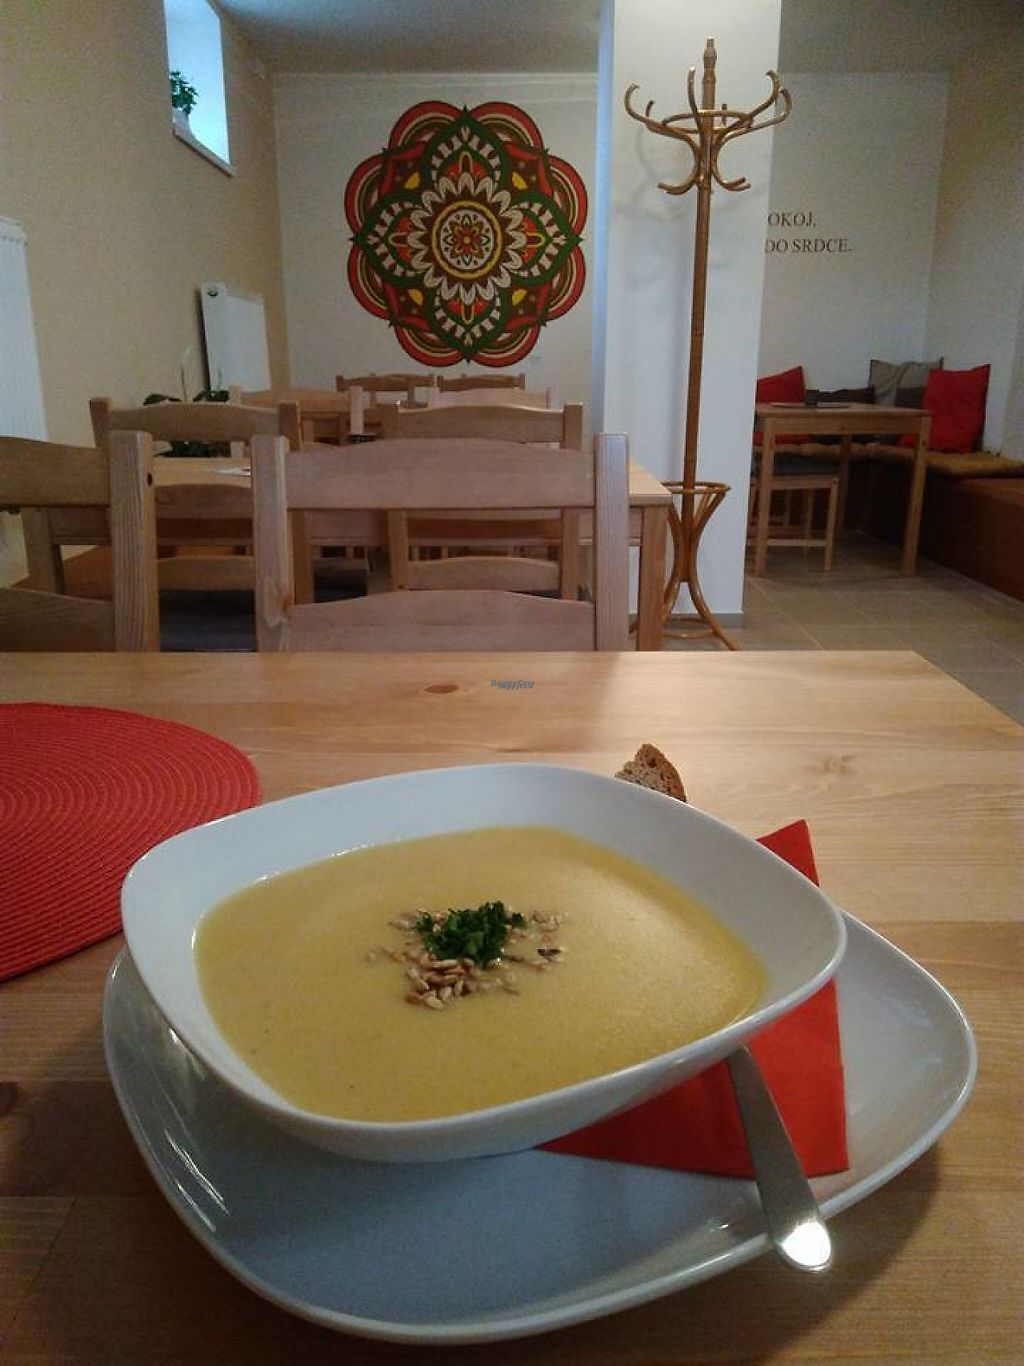 "Photo of Mandala Veggie Club  by <a href=""/members/profile/Makita"">Makita</a> <br/>Soup from Mandala <br/> January 25, 2017  - <a href='/contact/abuse/image/86045/216886'>Report</a>"